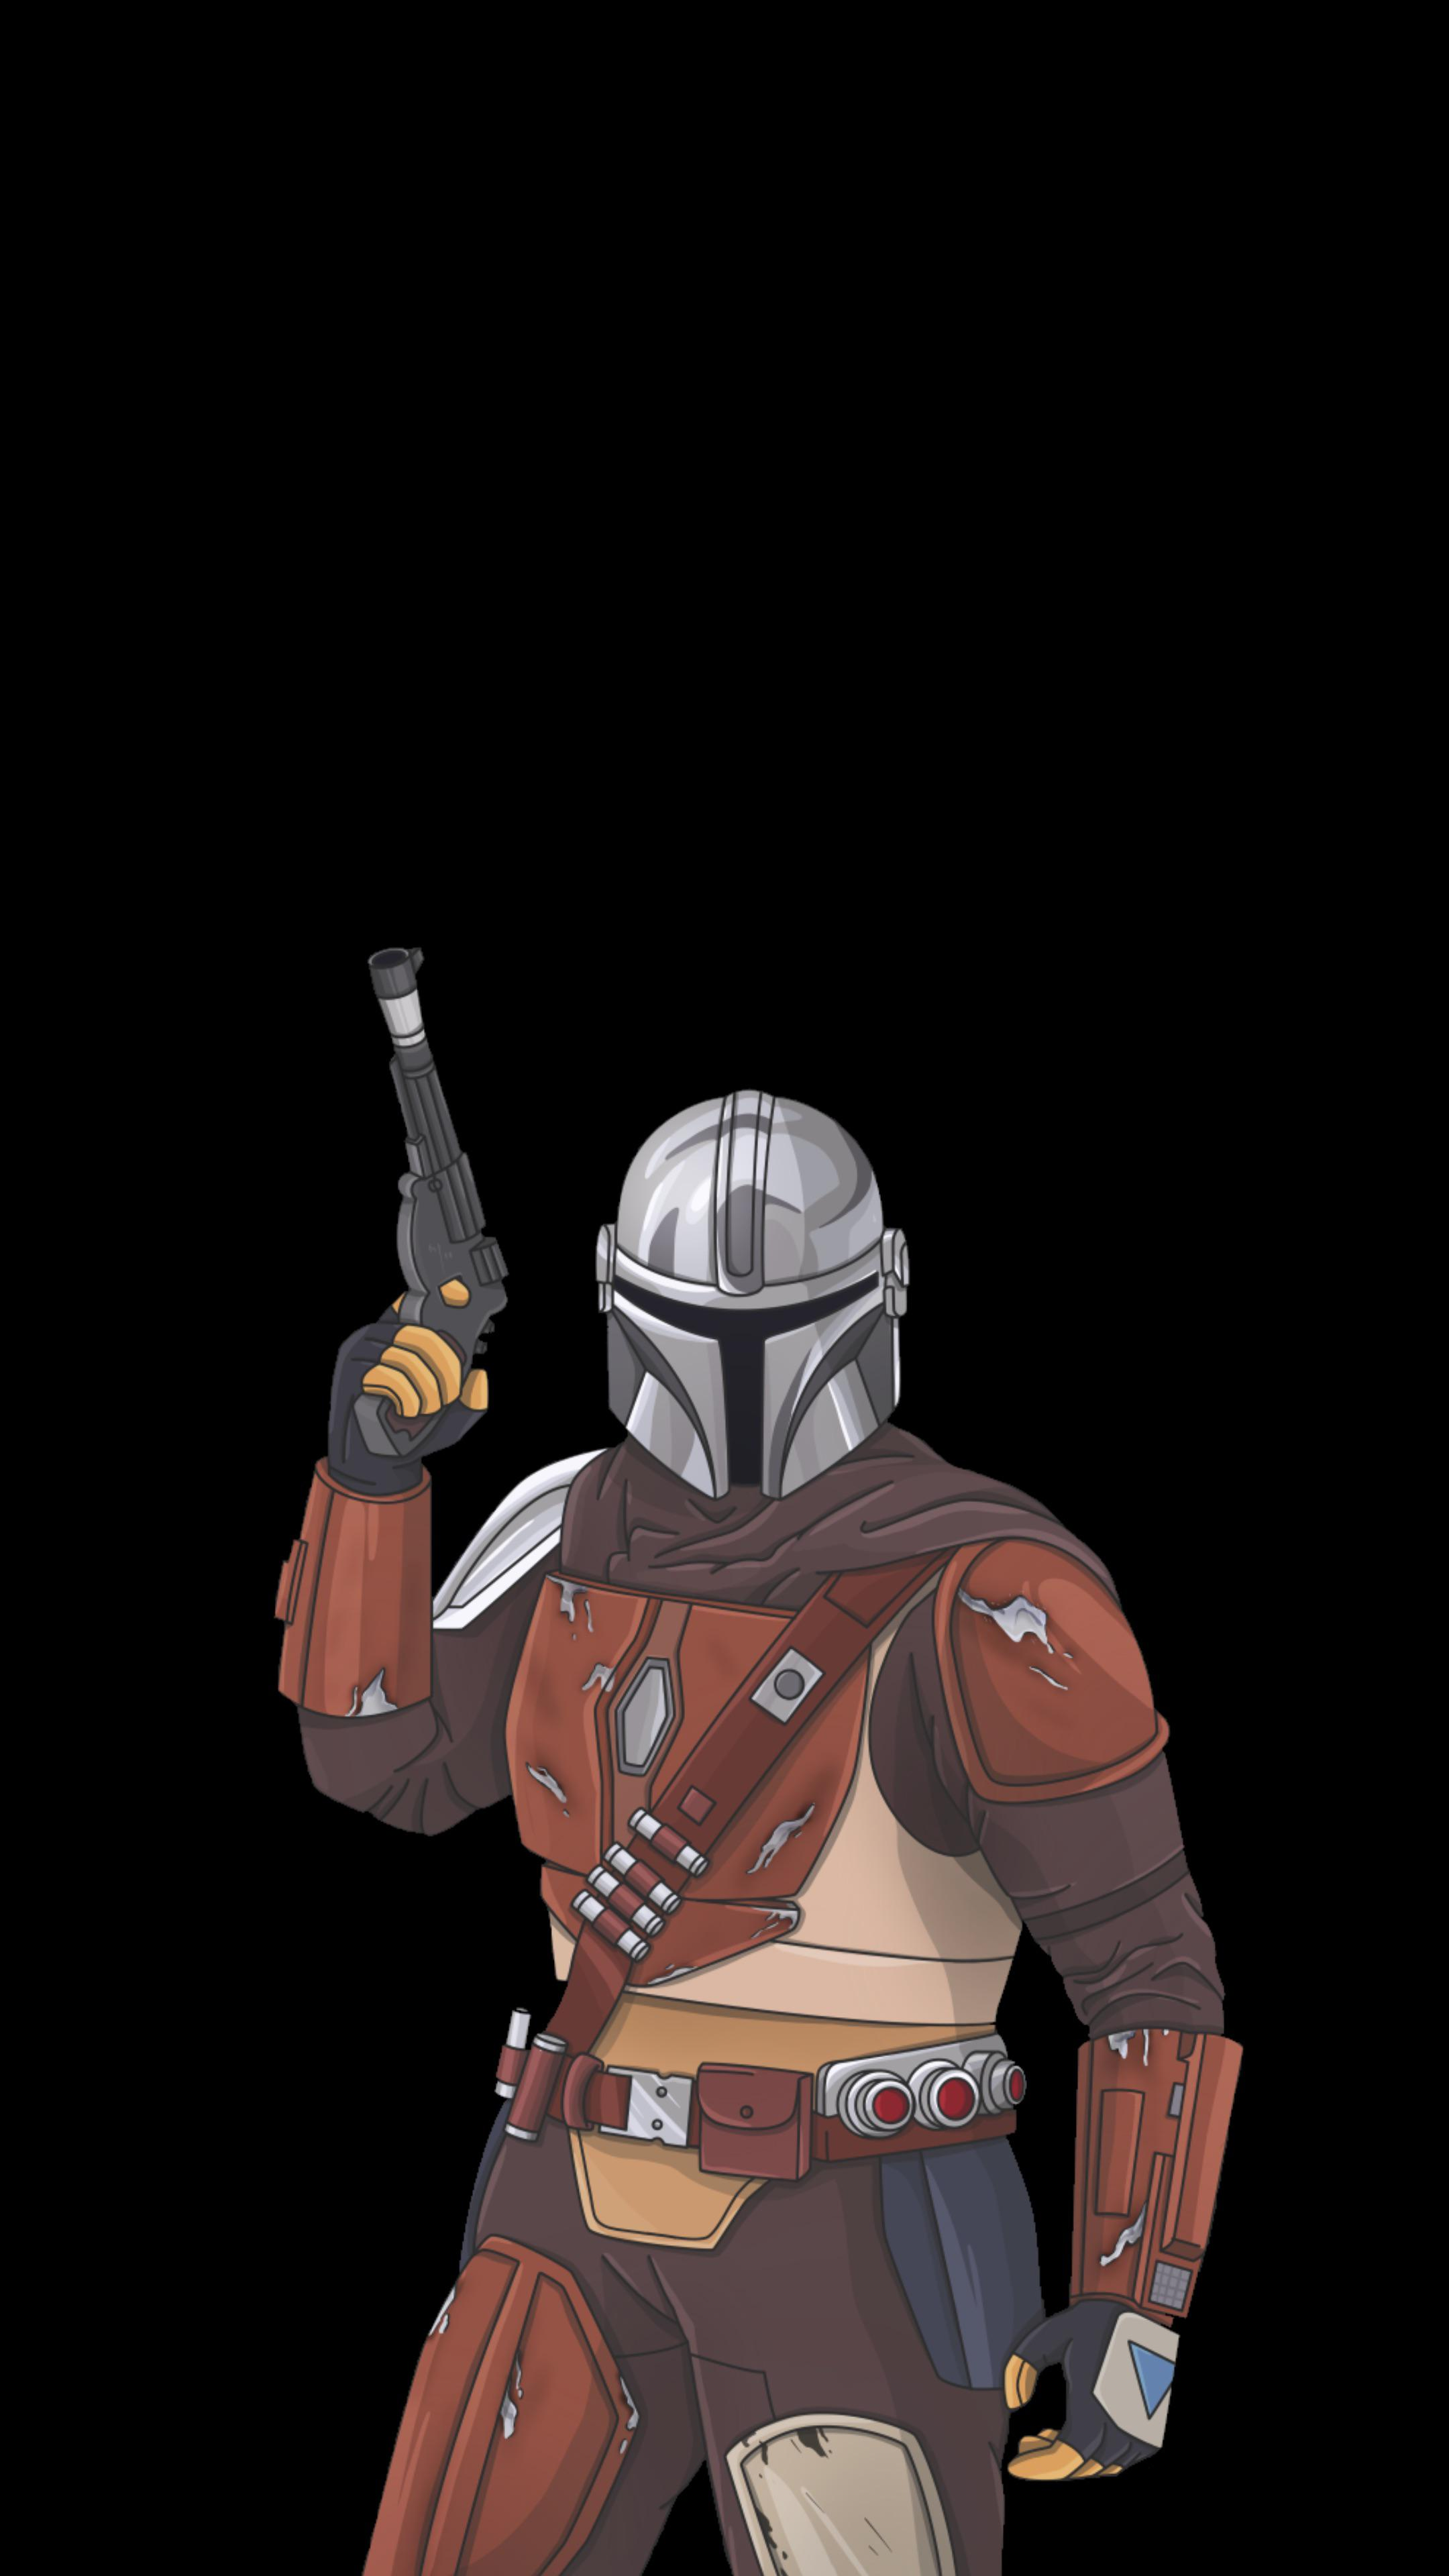 The Mandalorian Wallpapers Oled Iphone Screens Edition